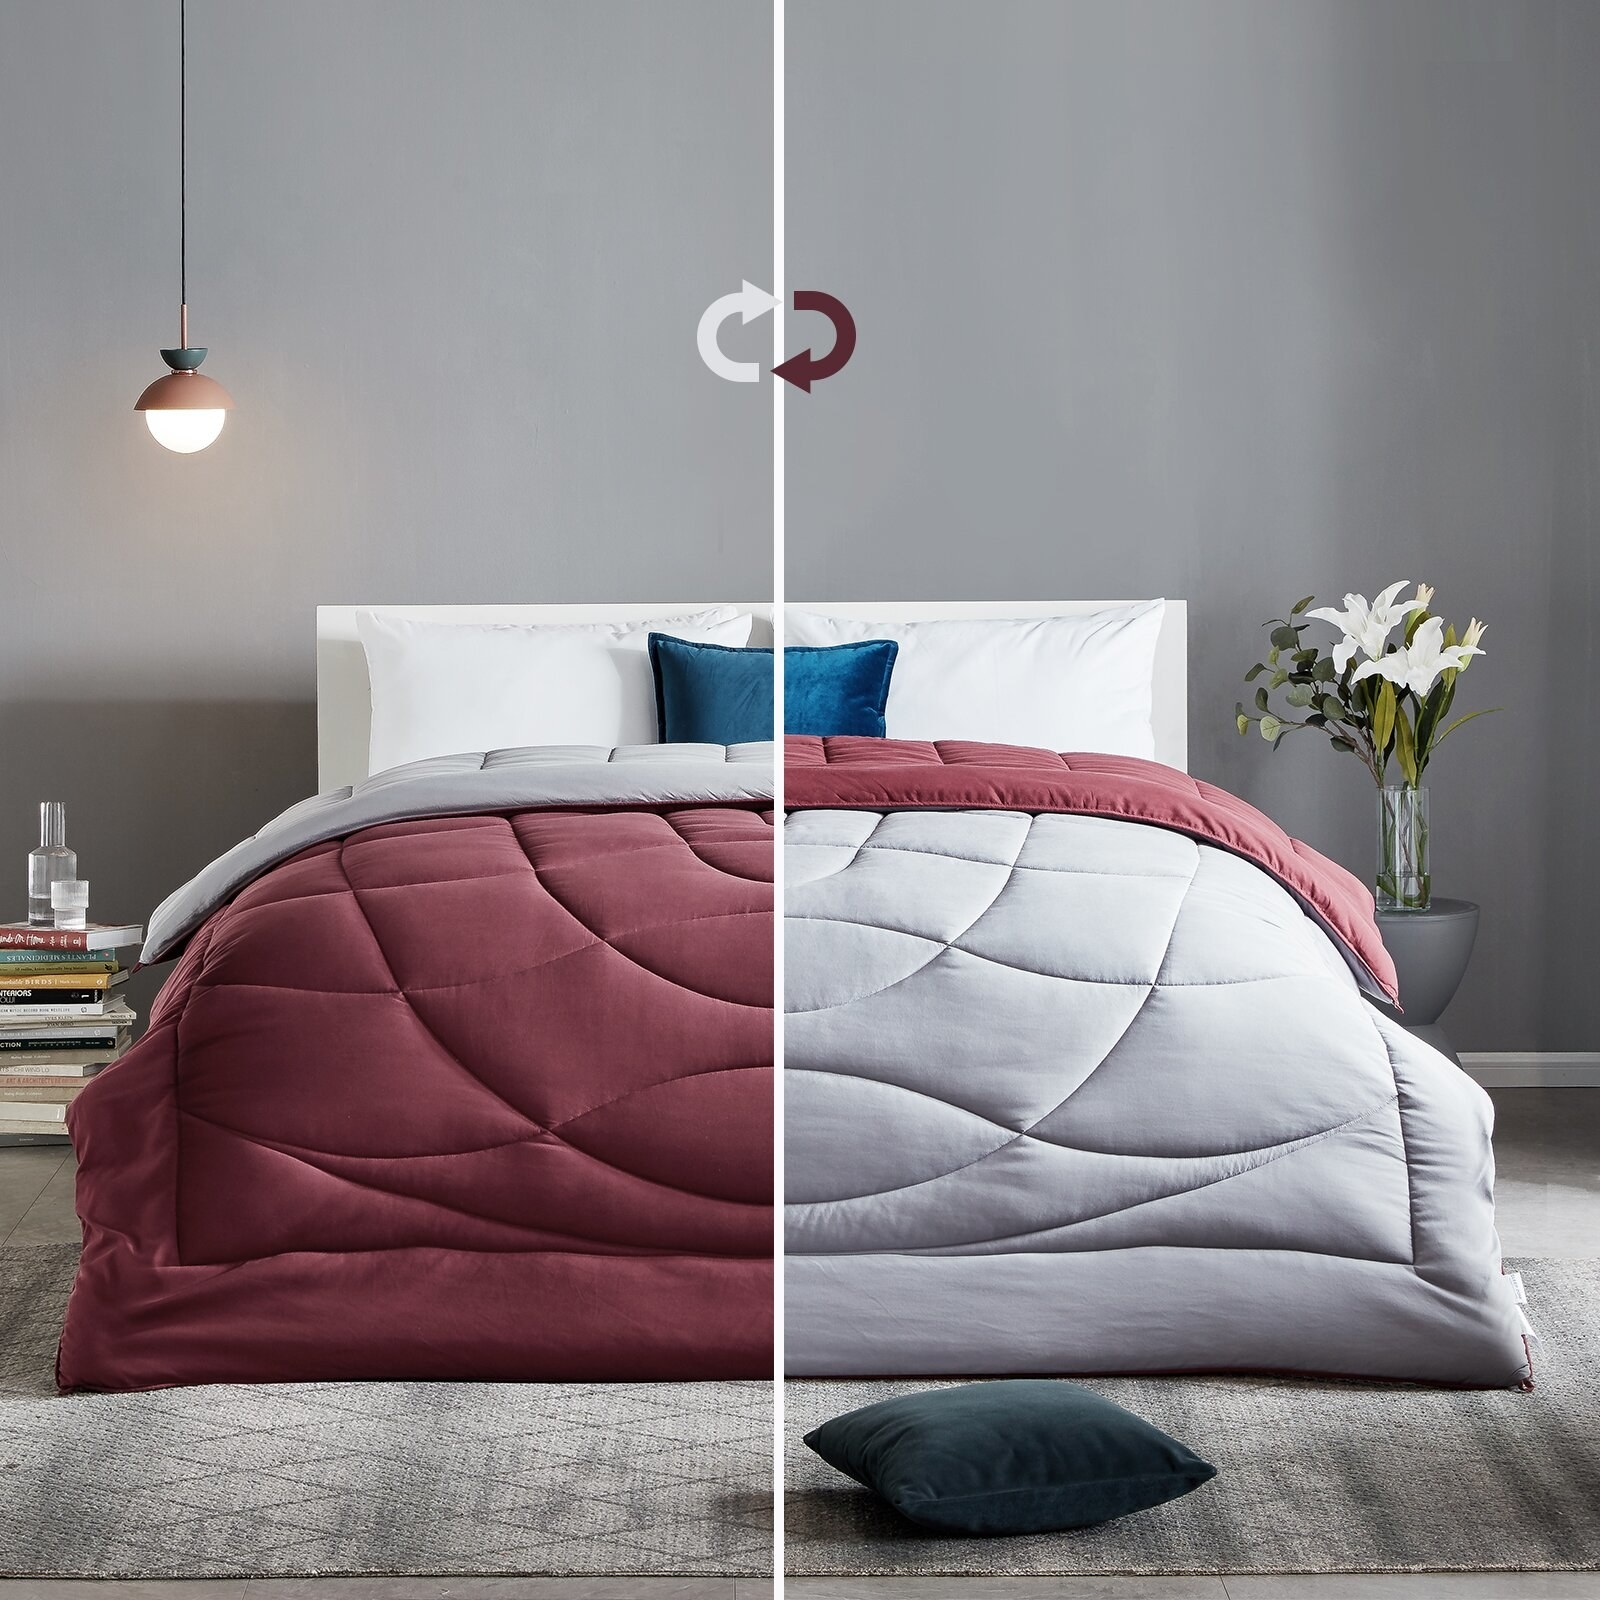 maroon and gray reversible comforter showing both sides